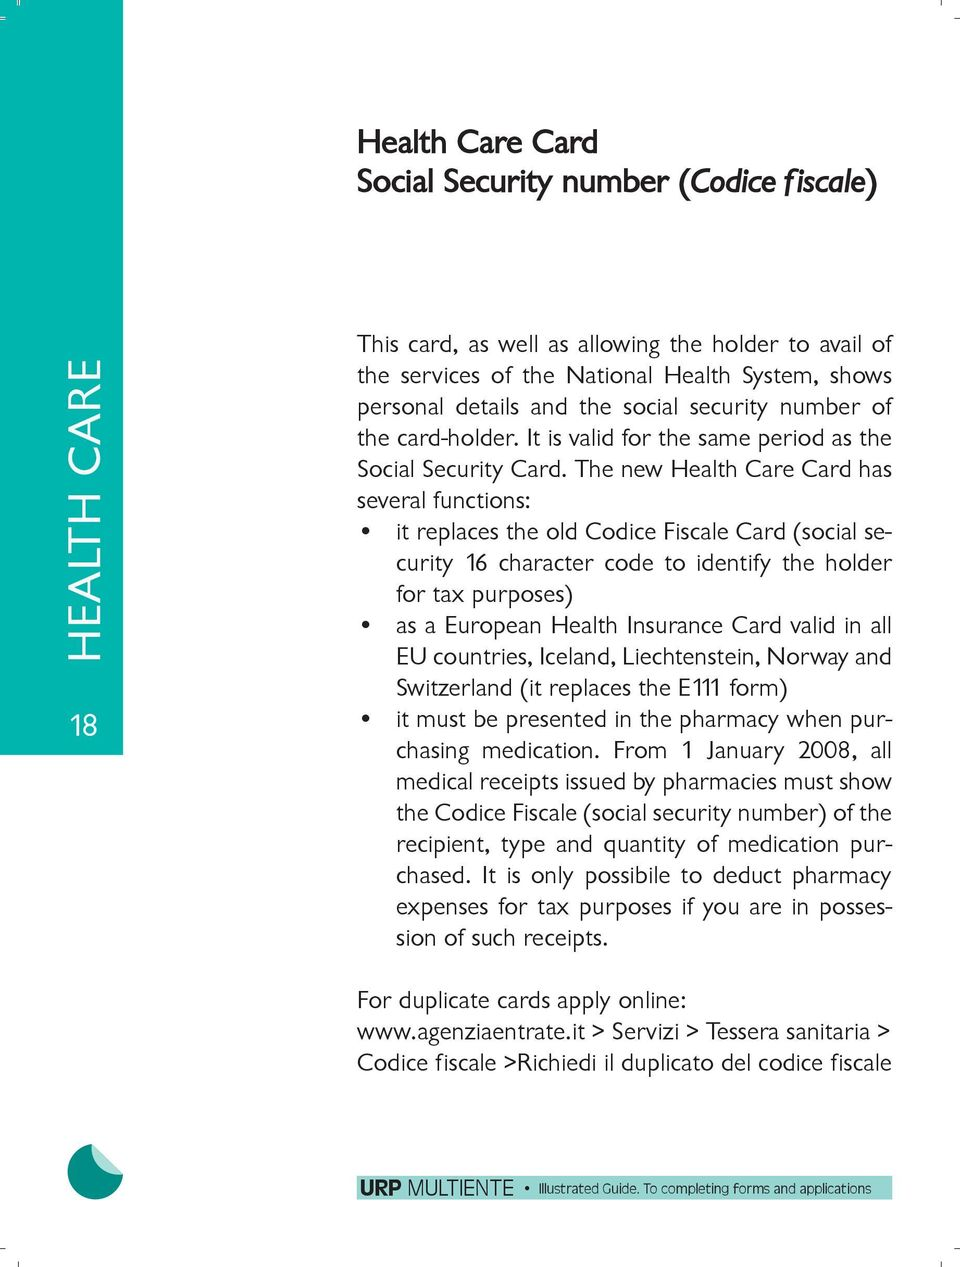 The new Health Care Card has several functions: it replaces the old Codice Fiscale Card (social security 16 character code to identify the holder for tax purposes) as a European Health Insurance Card